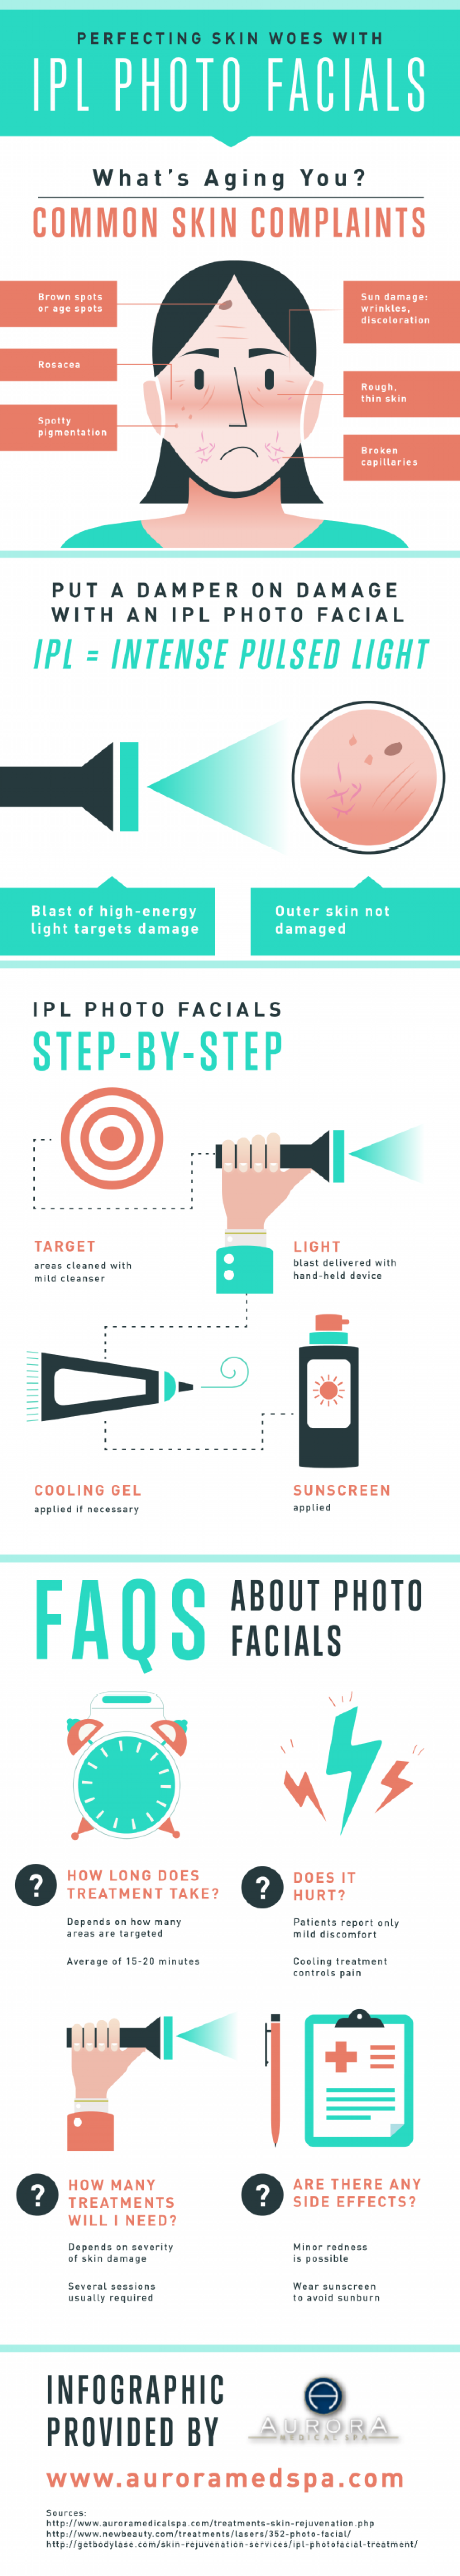 Perfecting Skin Woes with IPL Photo Facials  Infographic